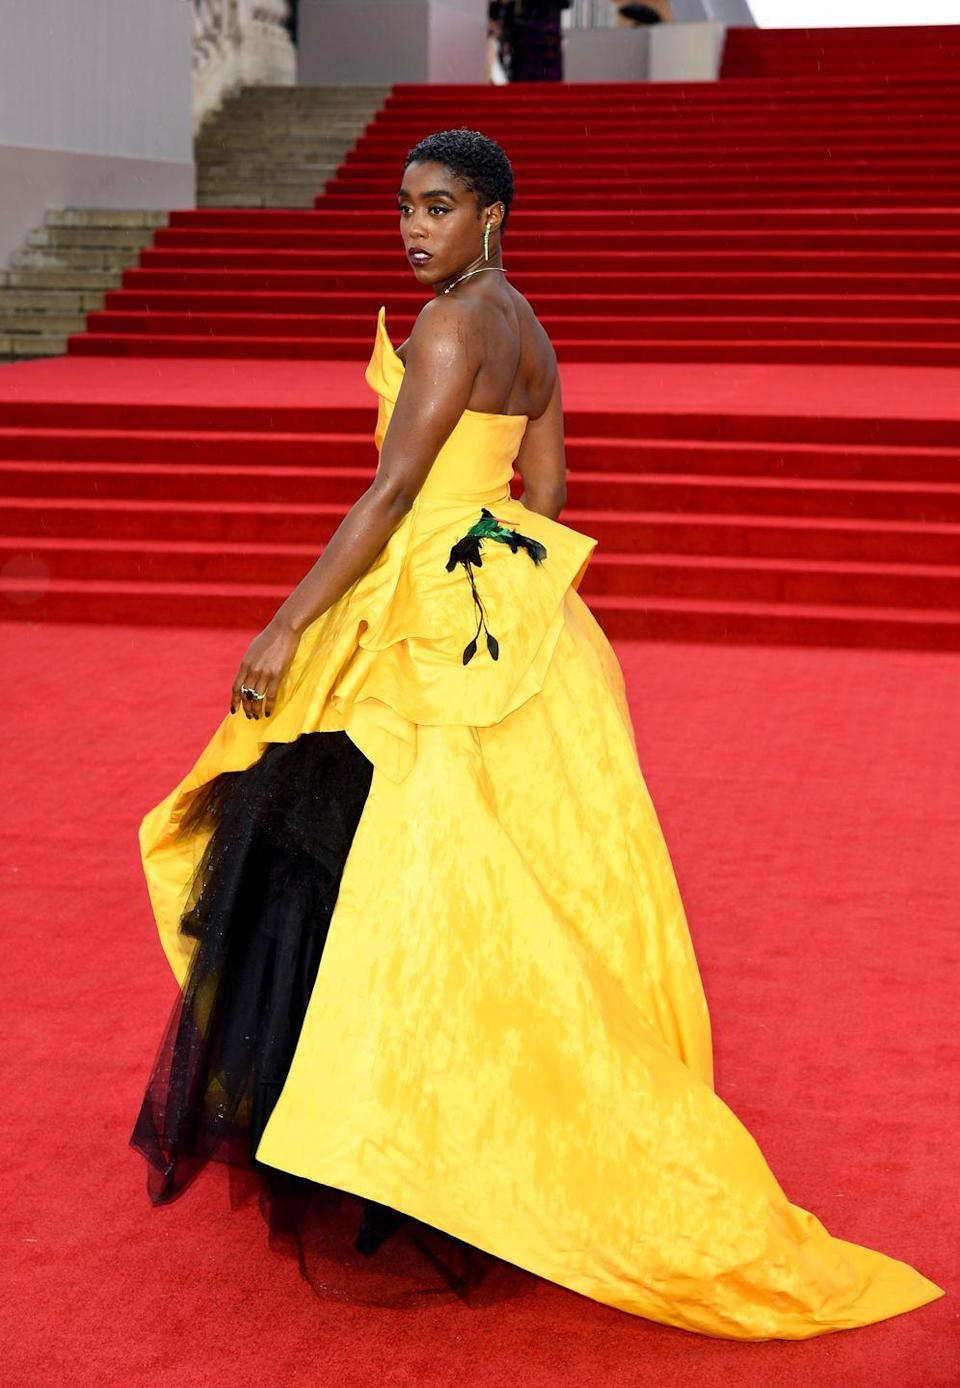 """<p>Lashana Lynch, who <a href=""""https://www.harpersbazaar.com/uk/culture/culture-news/a34517814/lashana-lynch-black-female-007-interview/"""" rel=""""nofollow noopener"""" target=""""_blank"""" data-ylk=""""slk:plays the first Black female 007"""" class=""""link rapid-noclick-resp"""">plays the first Black female 007</a>, wore a dramatic Vivienne Westwood couture gown with a mixture of jewellery by Ara Vartanian, Shaun Leane and Jessica McCormack. </p>"""